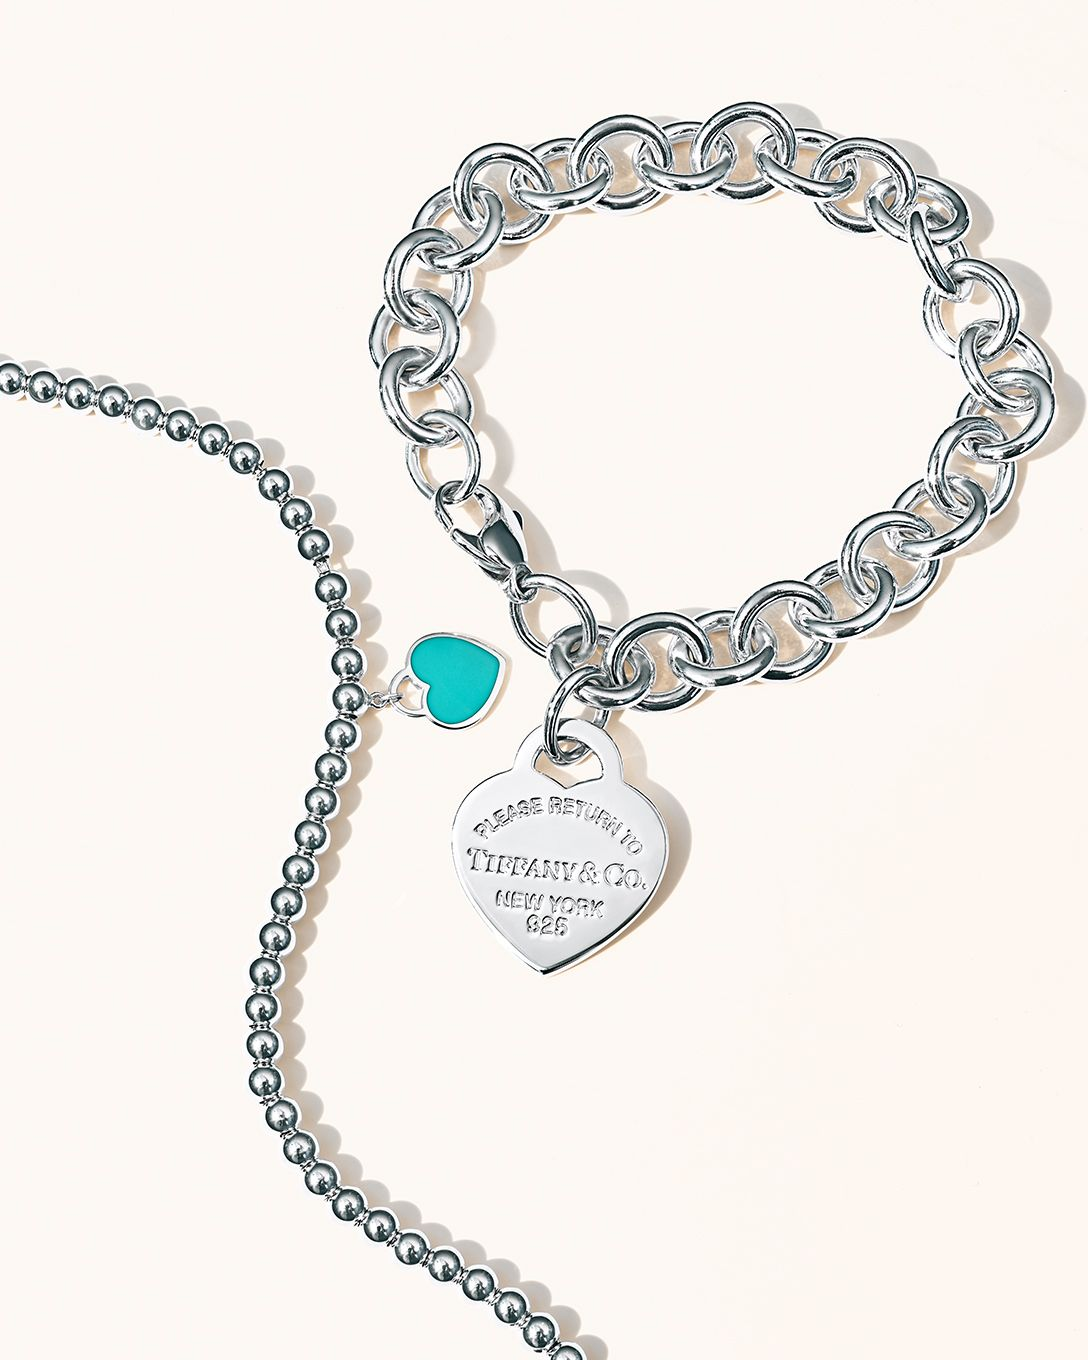 ad8c3d699 Gifts | Tiffany & Co.